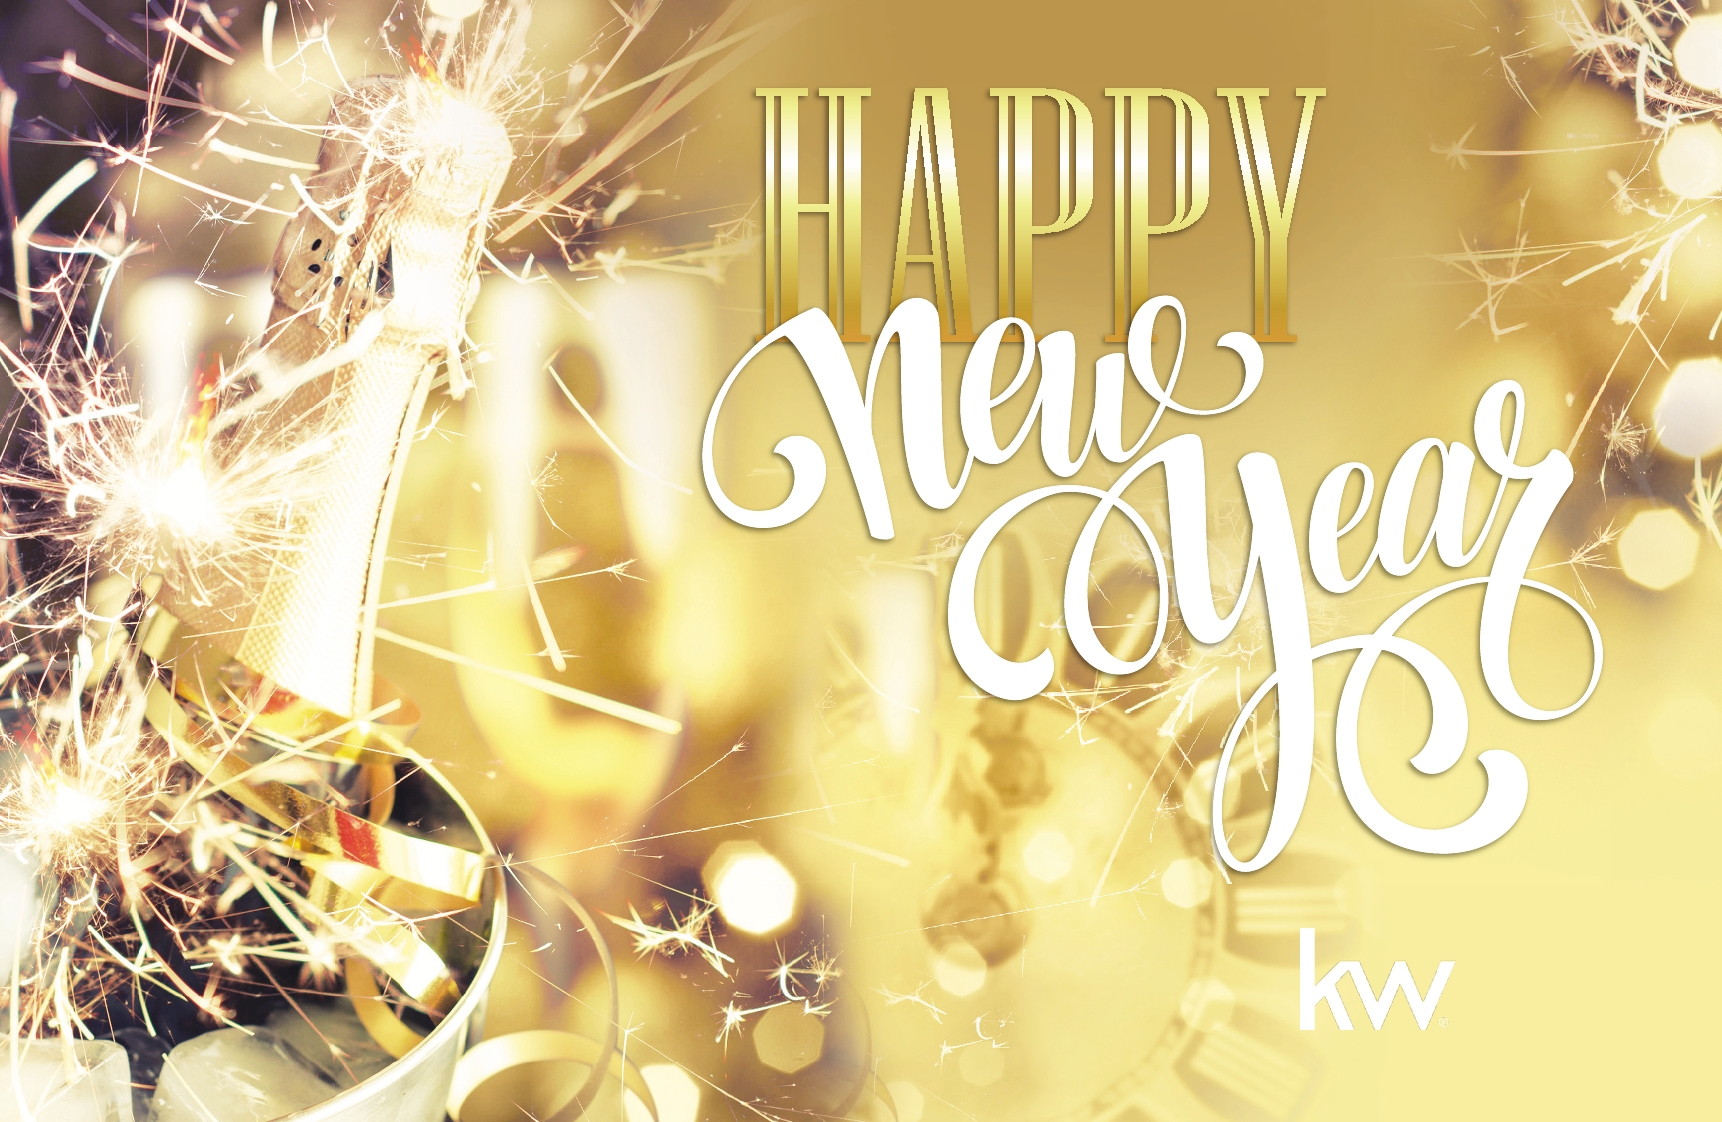 Happy-New-Year kw.jpg